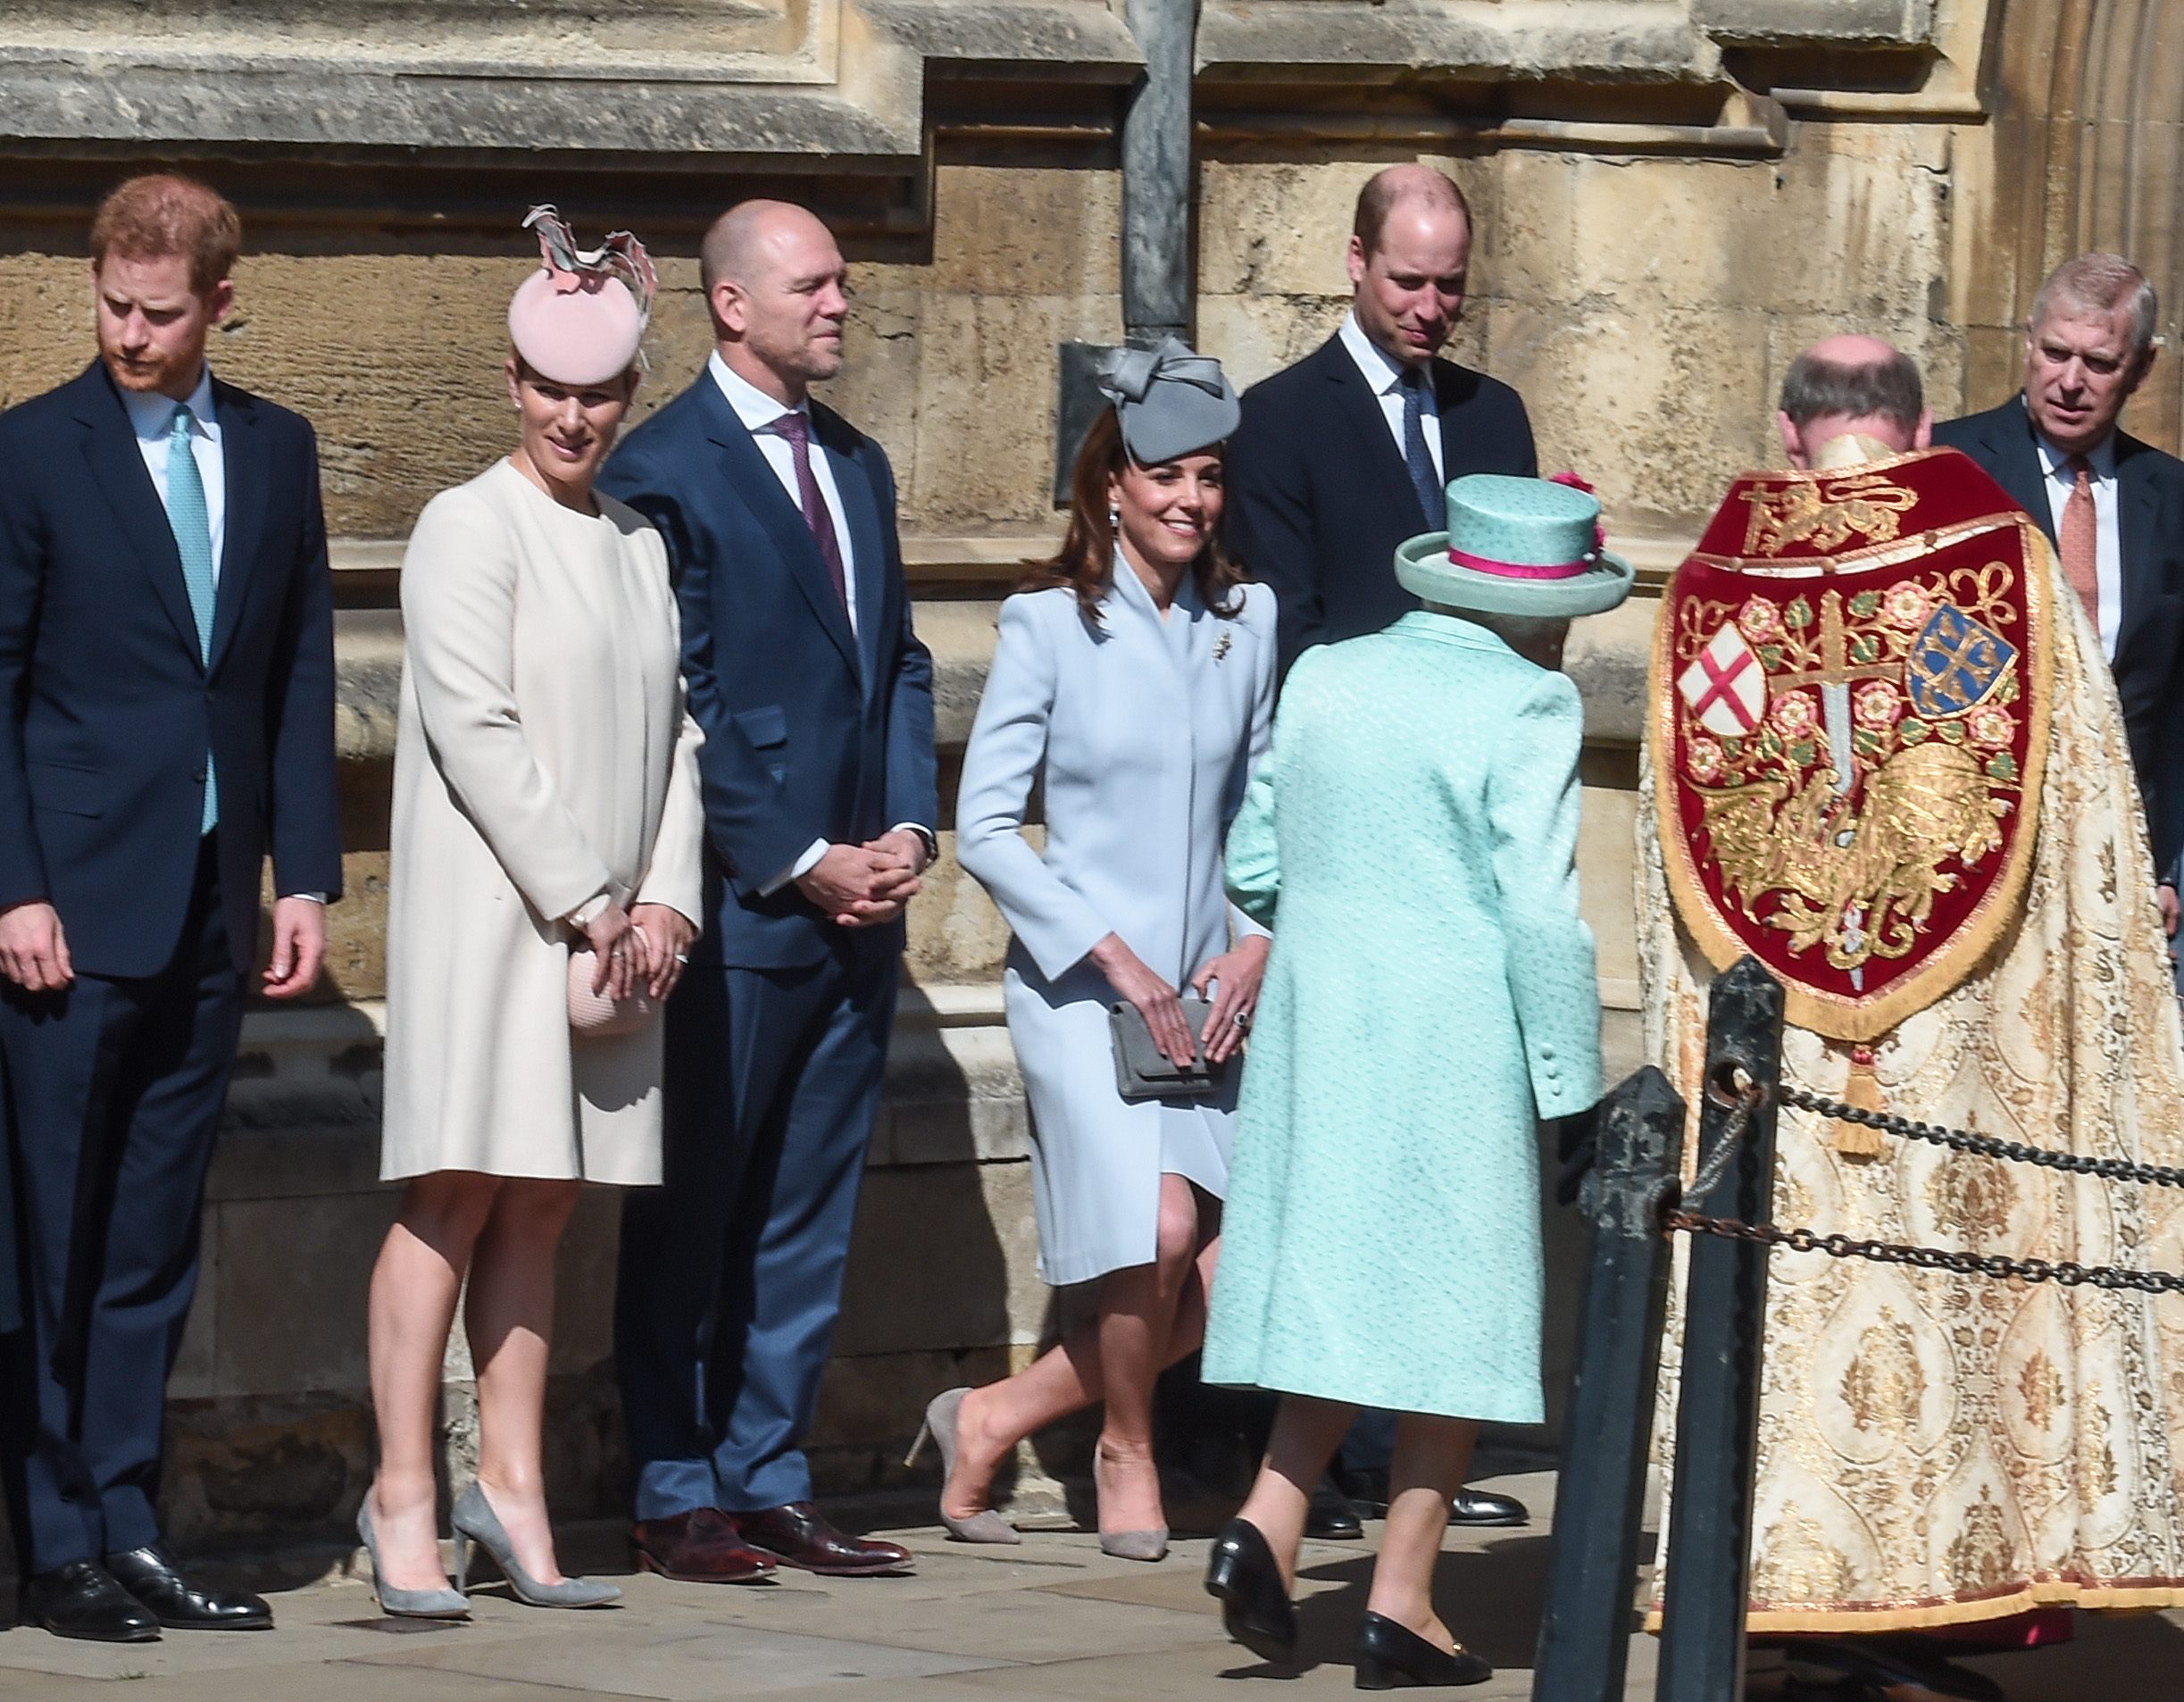 WINDSOR, ENGLAND - APRIL 21: (L-R) Prince Harry, Duke of Sussex, Zara Tindall, Mike Tindall, Catherine, Duchess of Cambridge and Prince William, Duke of Cambridge greet Queen Elizabeth II as she arrives for the Easter Sunday service at St George's Chapel on April 21, 2019 in Windsor, England. (Photo by Eamonn M. McCormack/Getty Images)